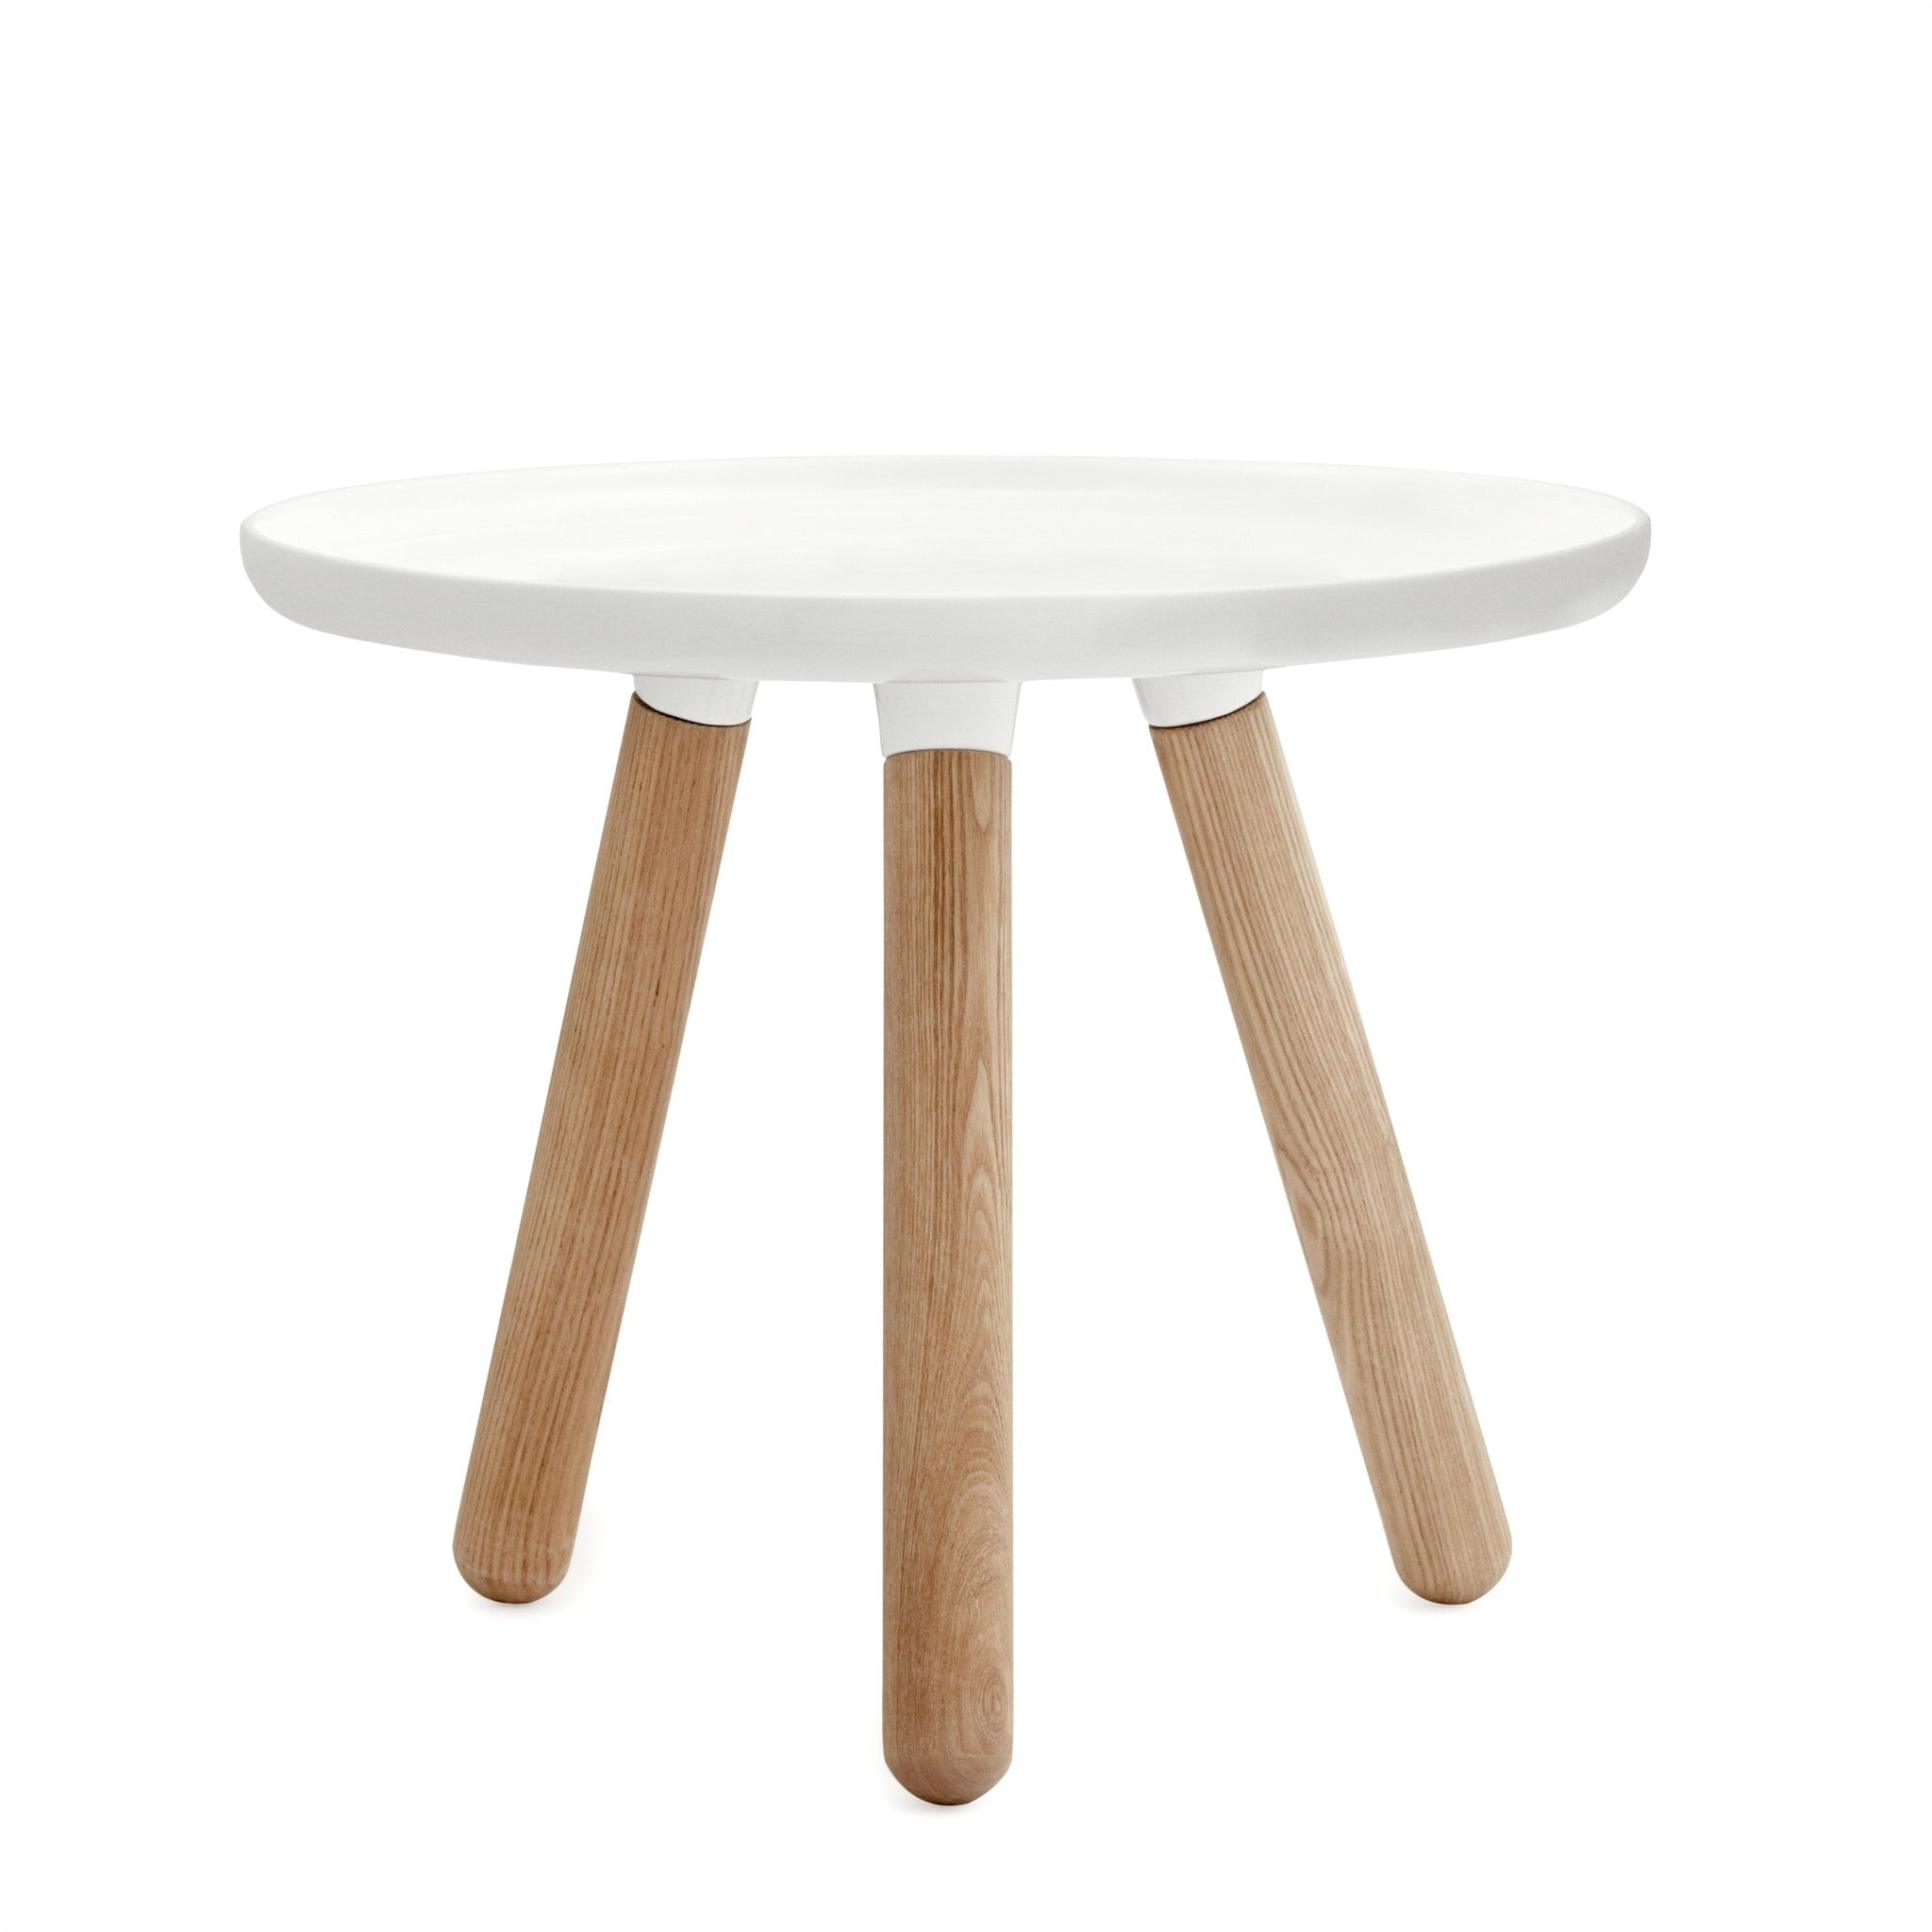 Tablo Table Round by Normann Copenhagen